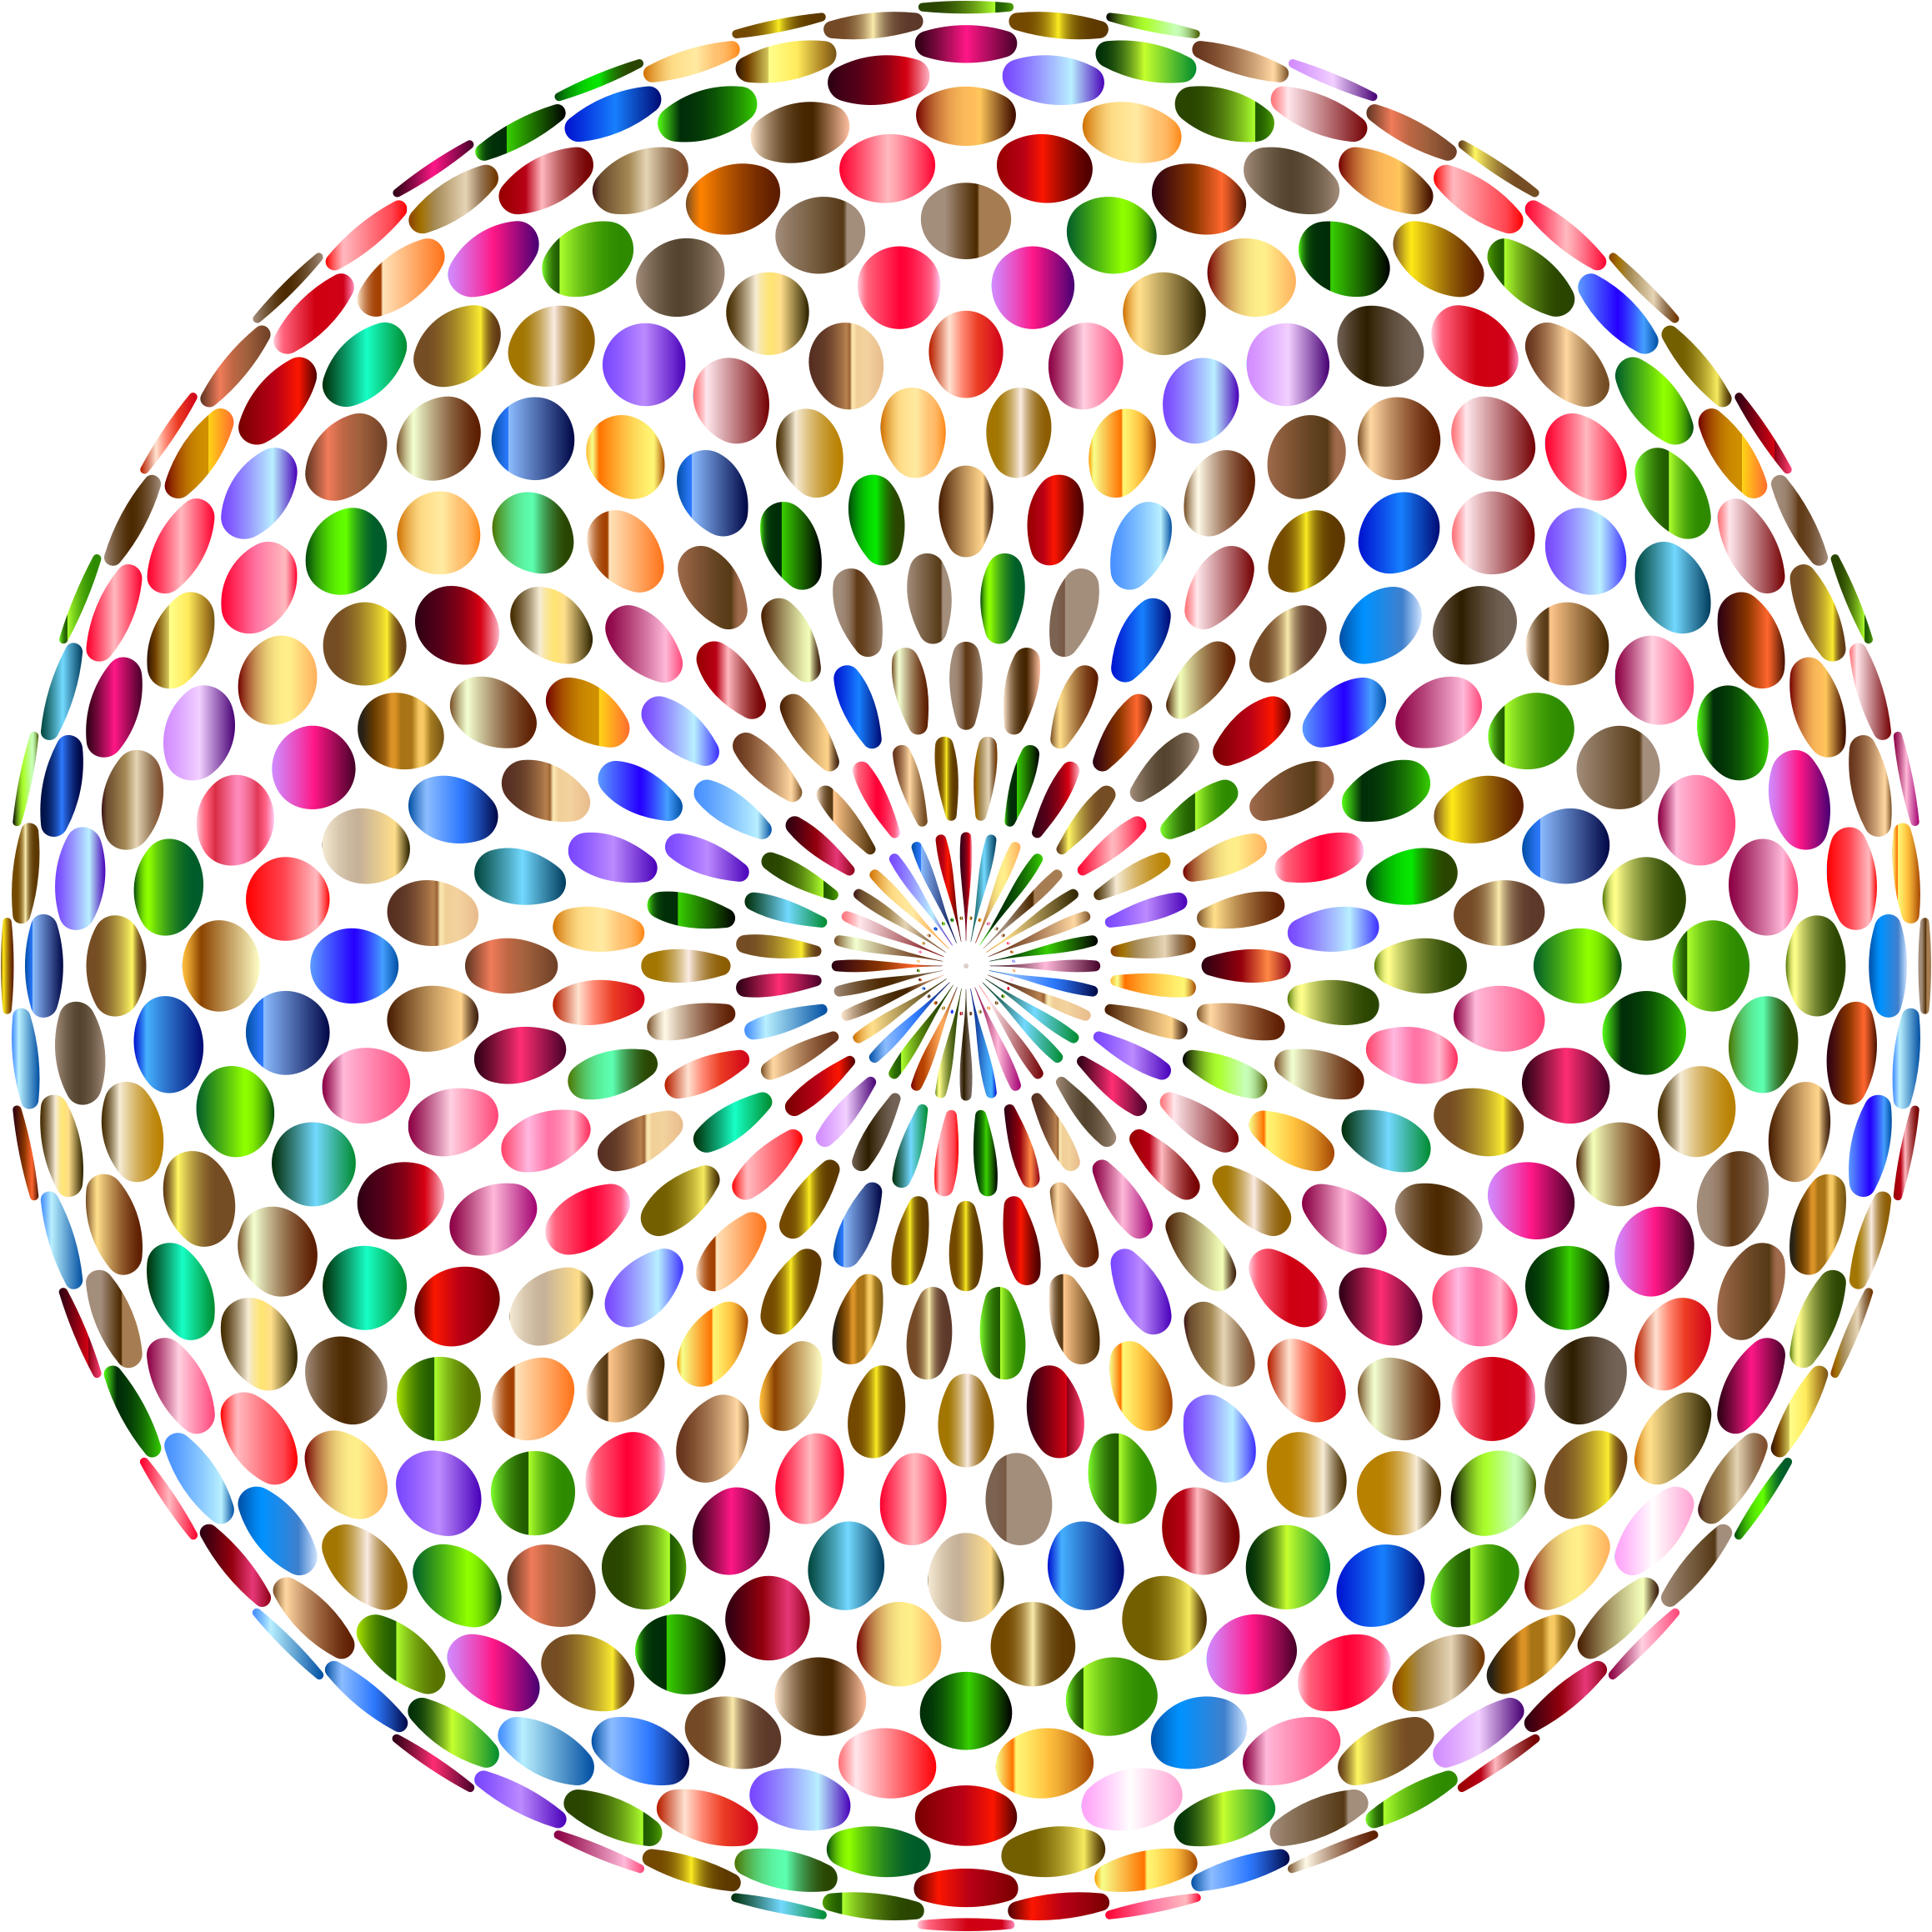 Psychedelic Chromatic Disco Ball No Background by GDJ